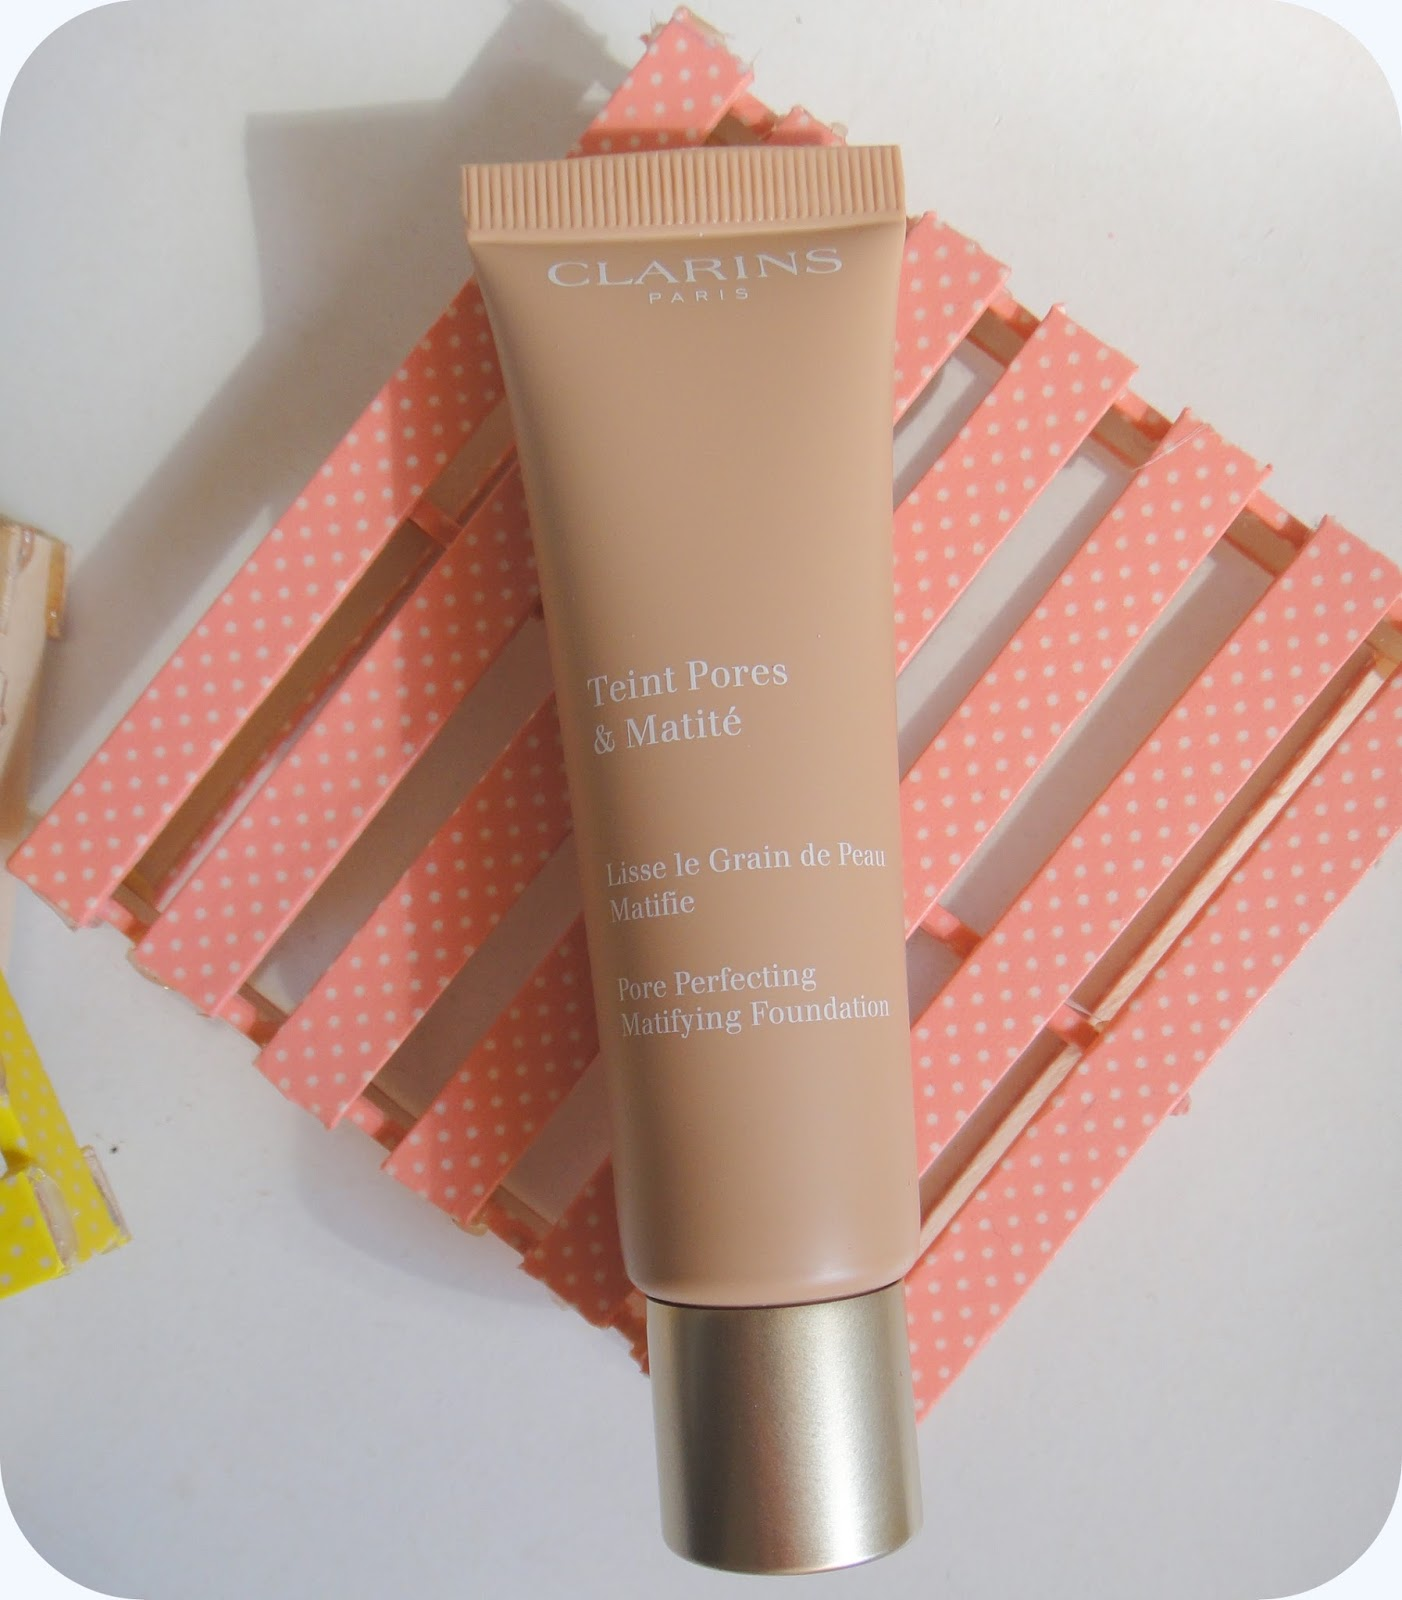 clarins teint pores and matite review